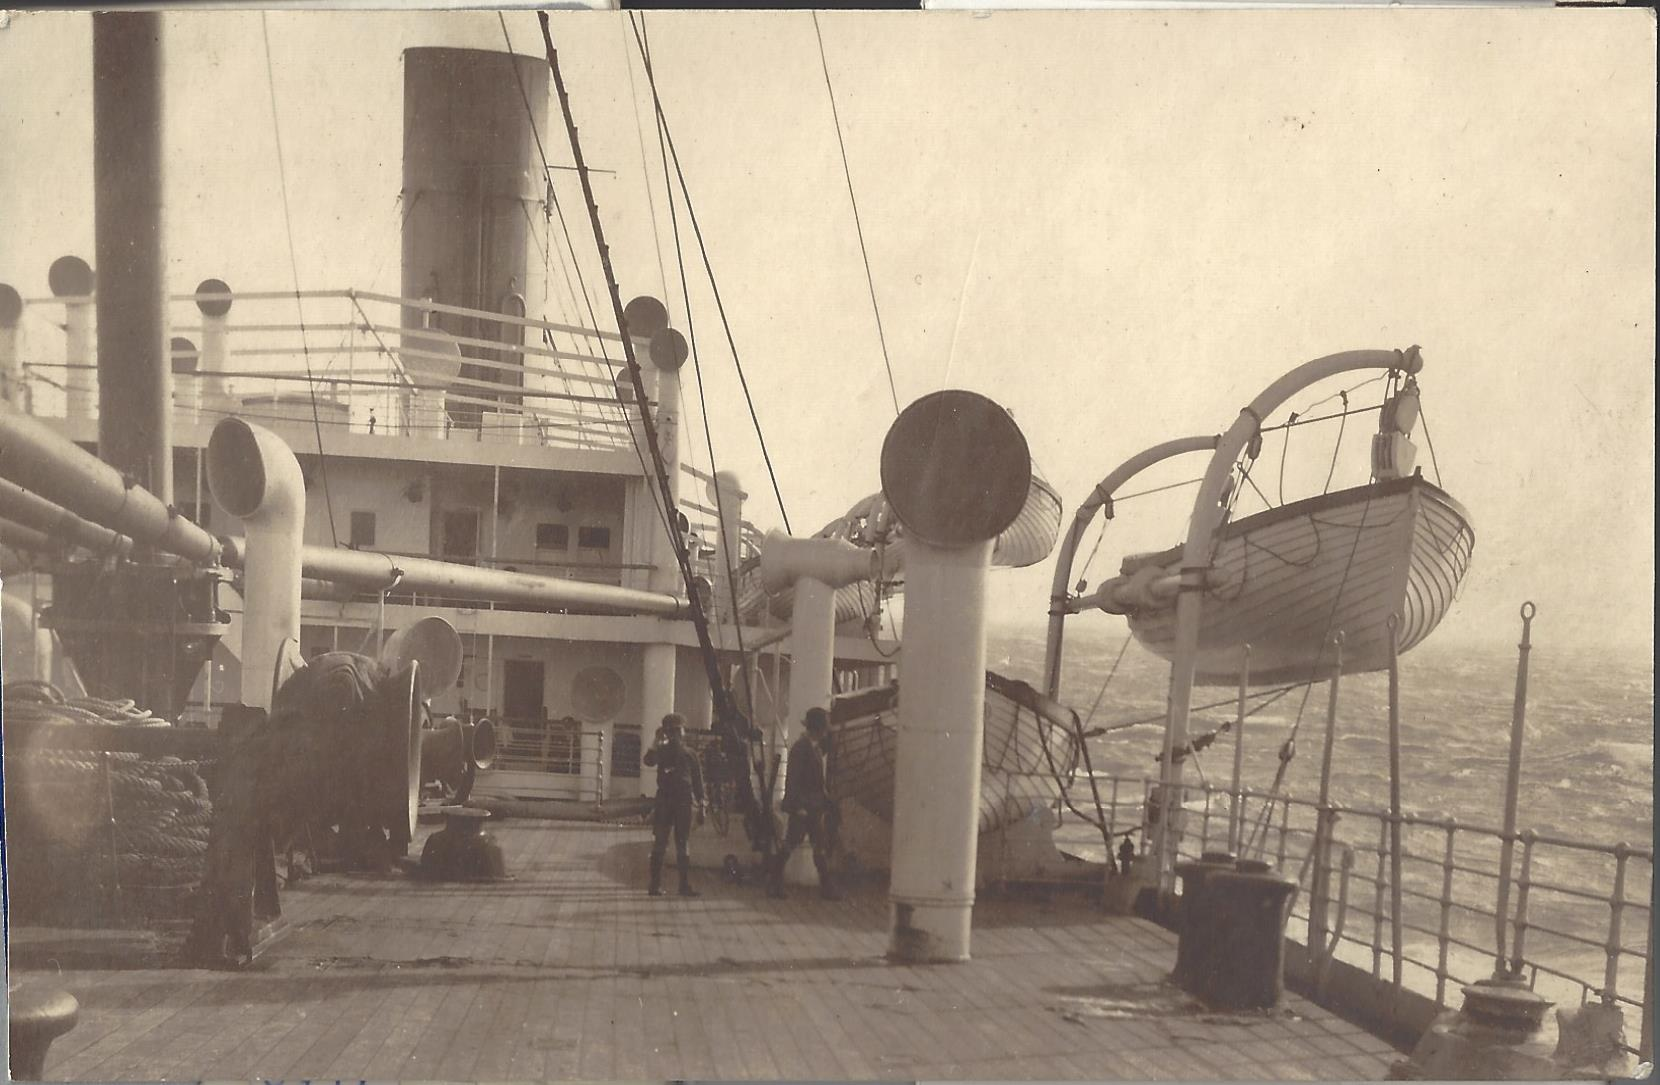 S.S. Euripides. At sea en route to England